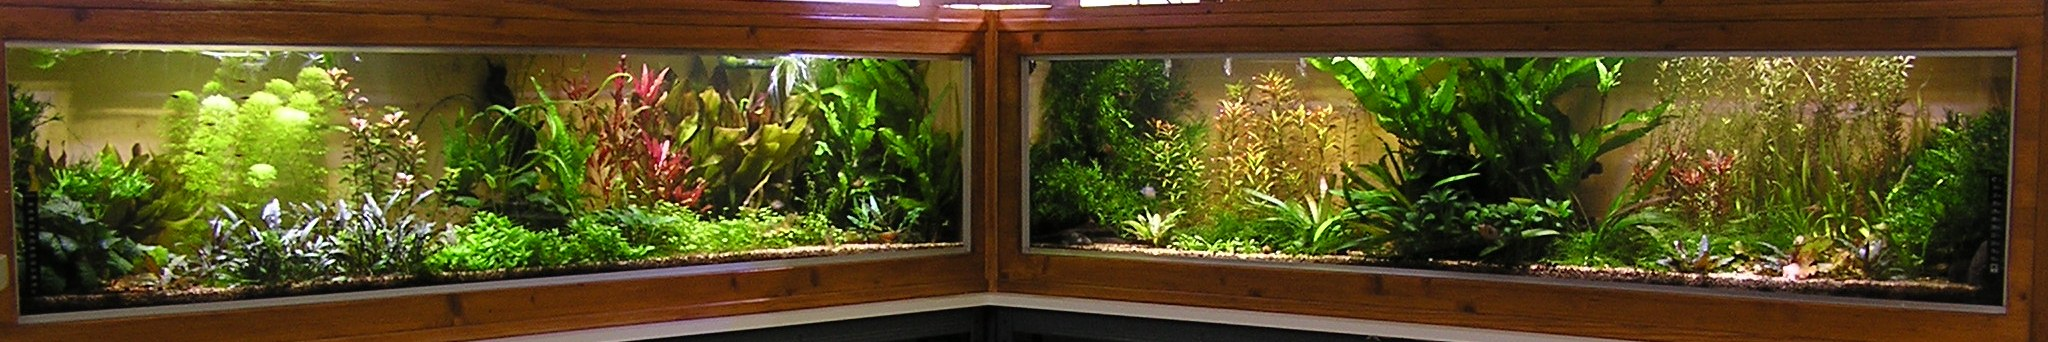 photo https://www.aquariophilie.org/images/article/Mon-aquarium-et-ses-secrets_a06010948_0.jpeg